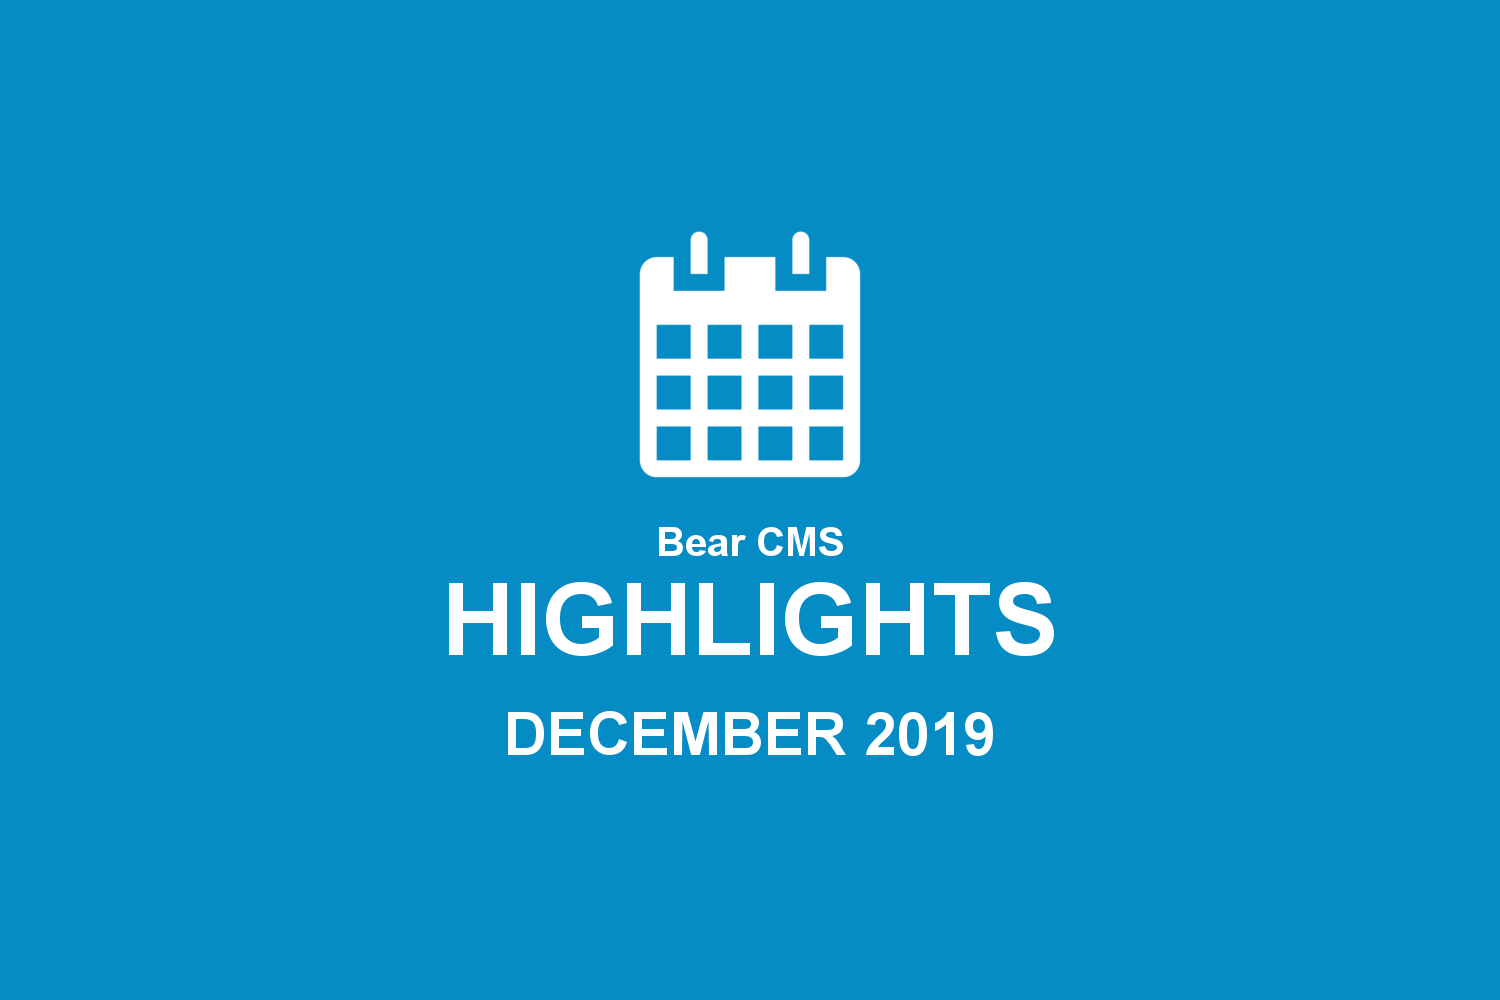 Bear CMS highlights (December 2019)